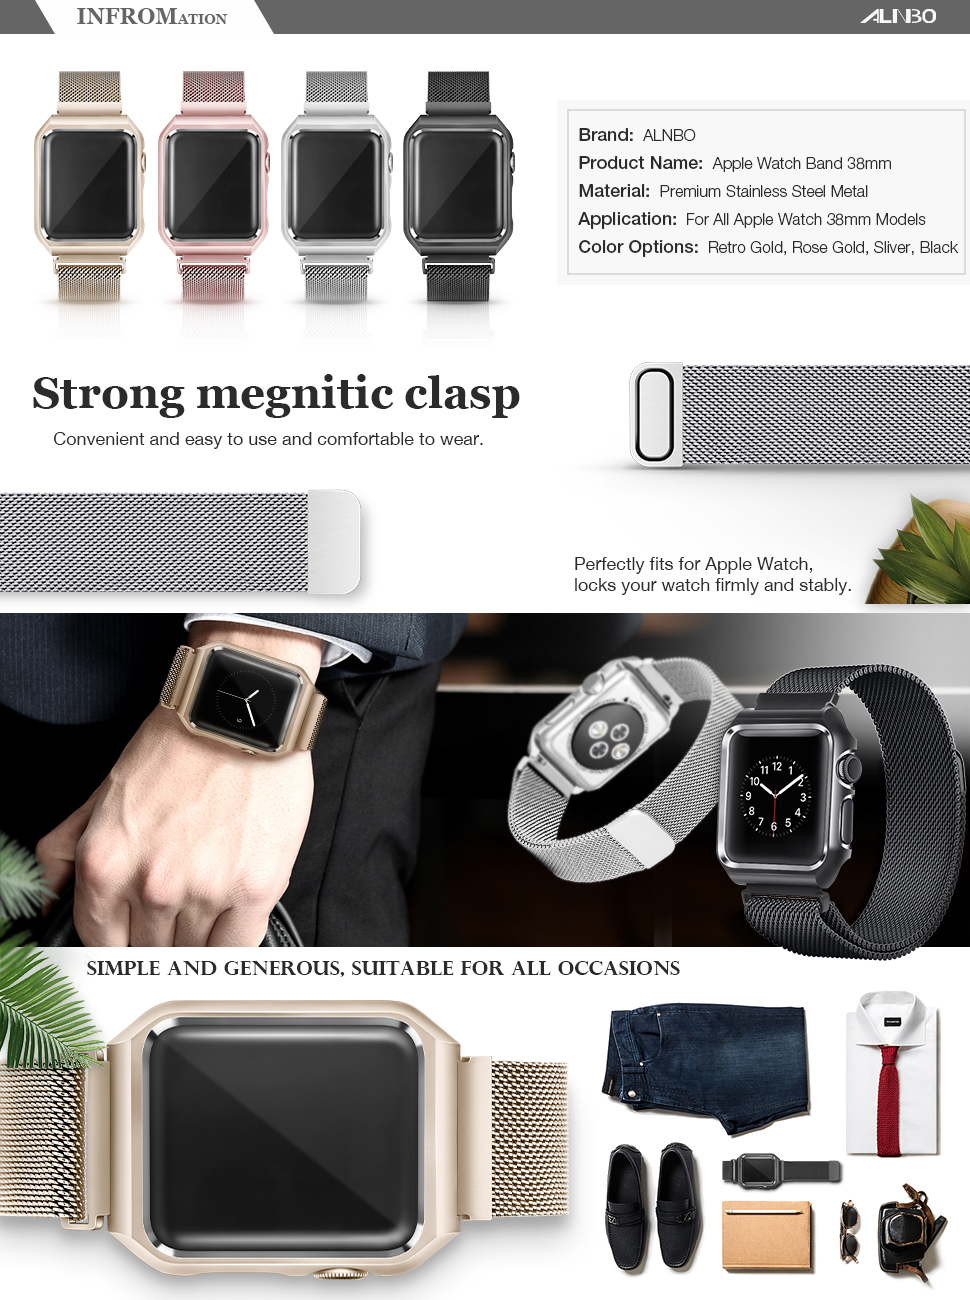 Alnbo Compatible 38mm Apple Watch Band Stainless Steel Series 2 Black For Both 1 And Version Model Personalized Your With This Refined Replacement Premium